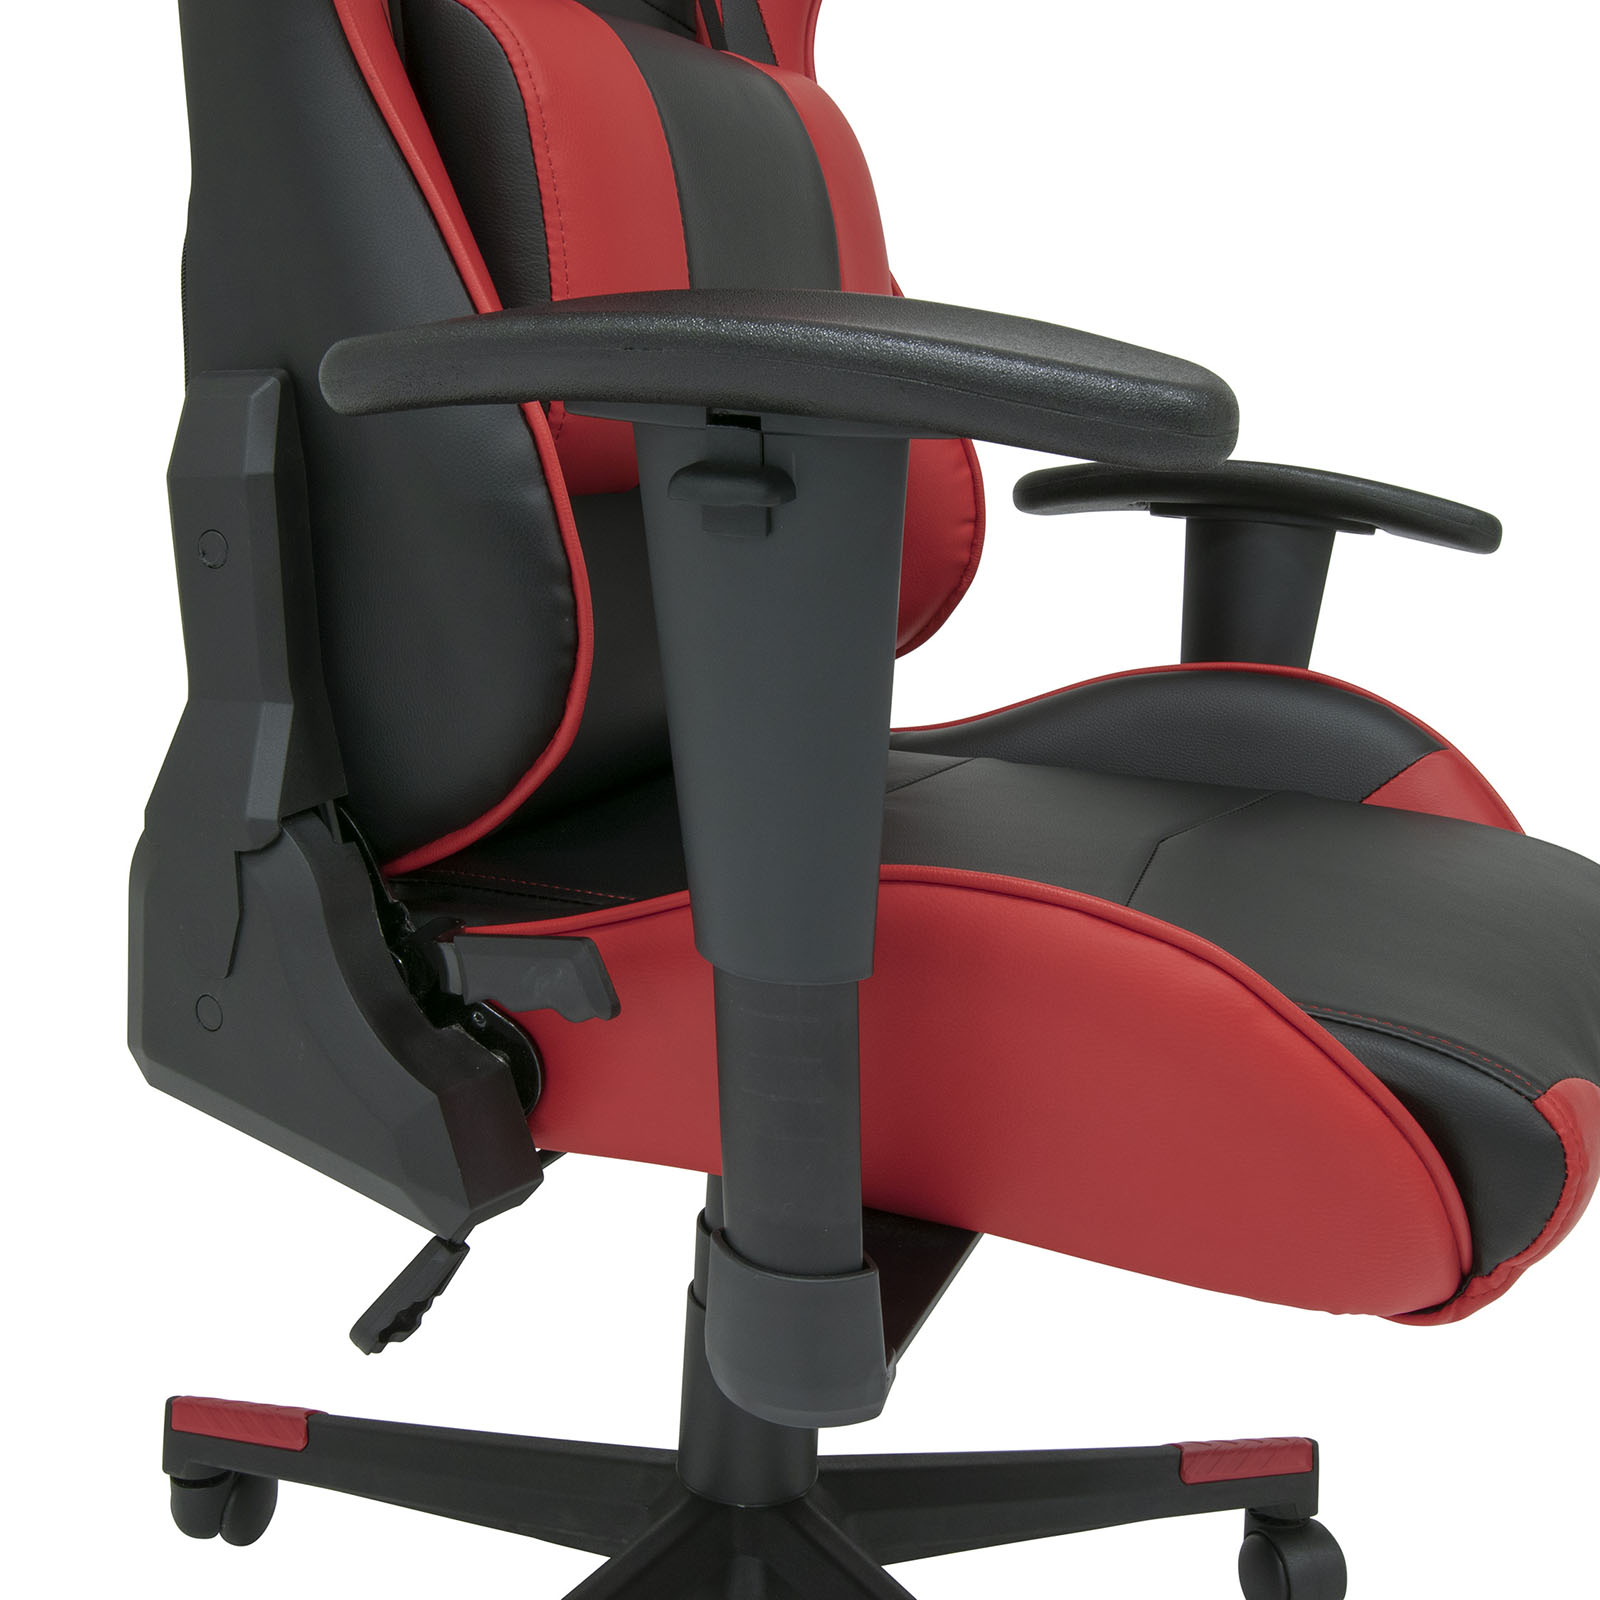 10660 High Back Gaming Chair detail3b